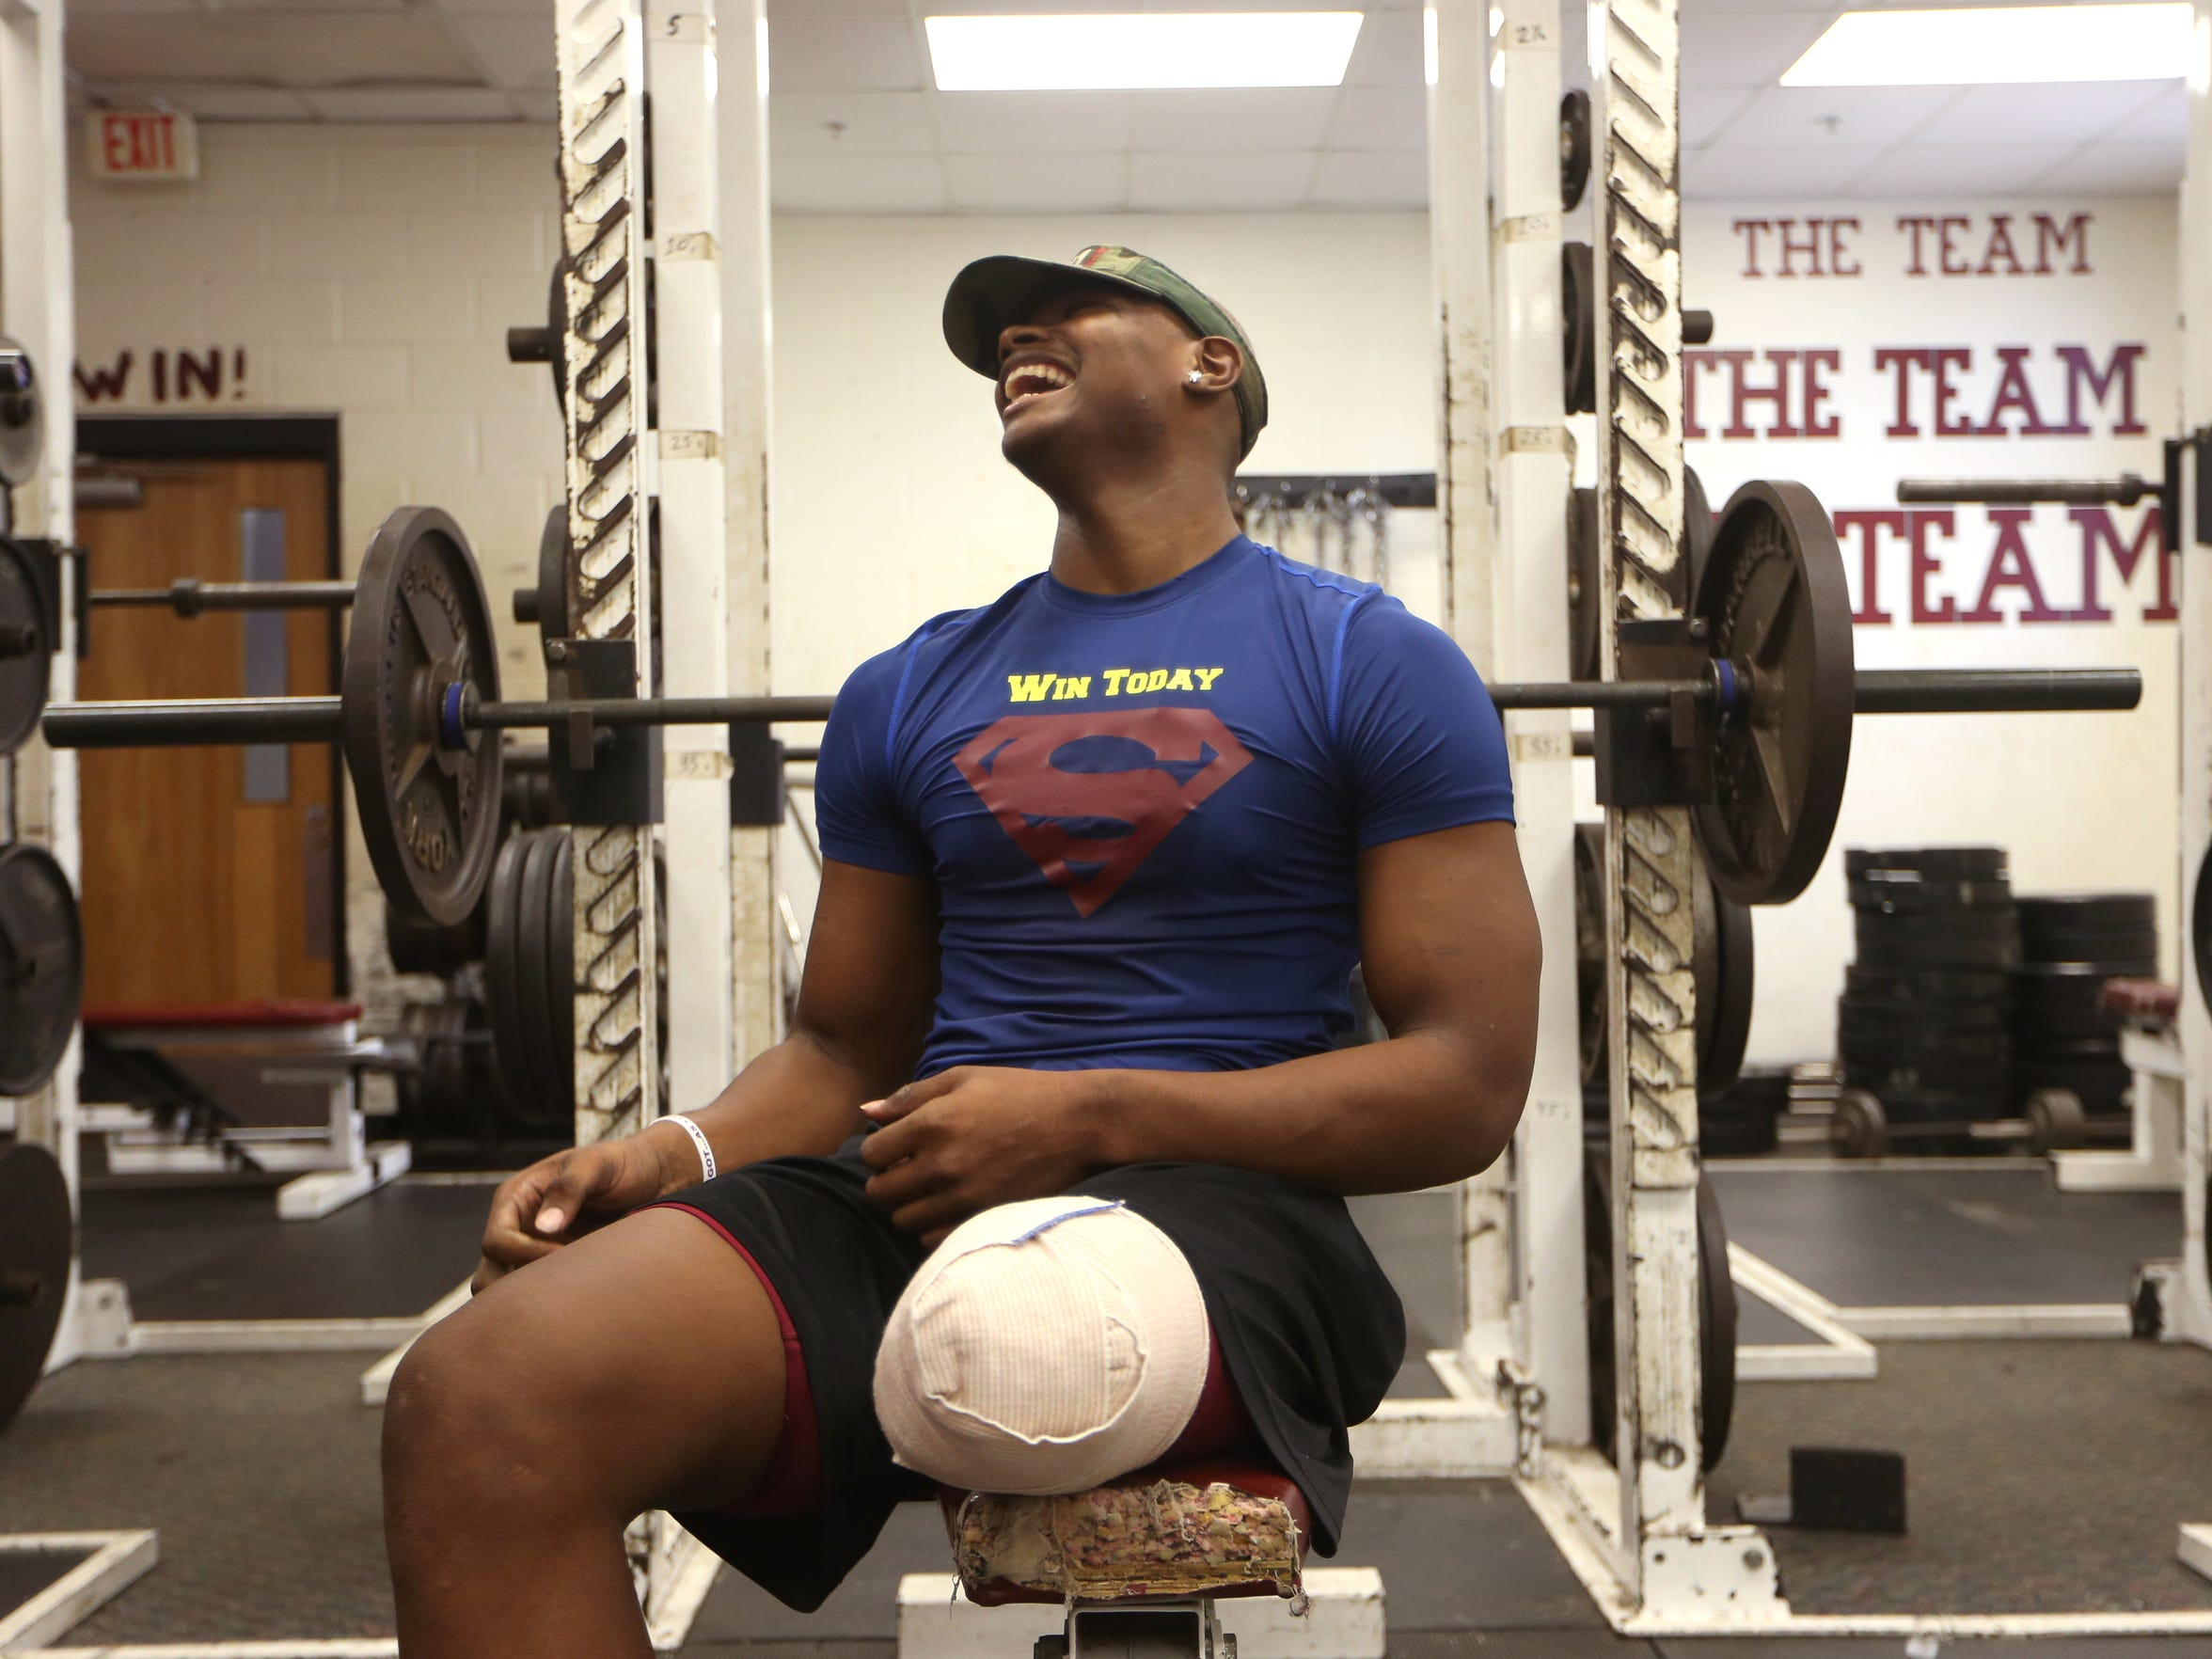 Cam Brown, who last month graduated from Florida High, works out in the gym at the school on Thursday, July 6, 2017, one week after having his left leg amputated due to complications with Osteosarcoma, a type of bone cancer.